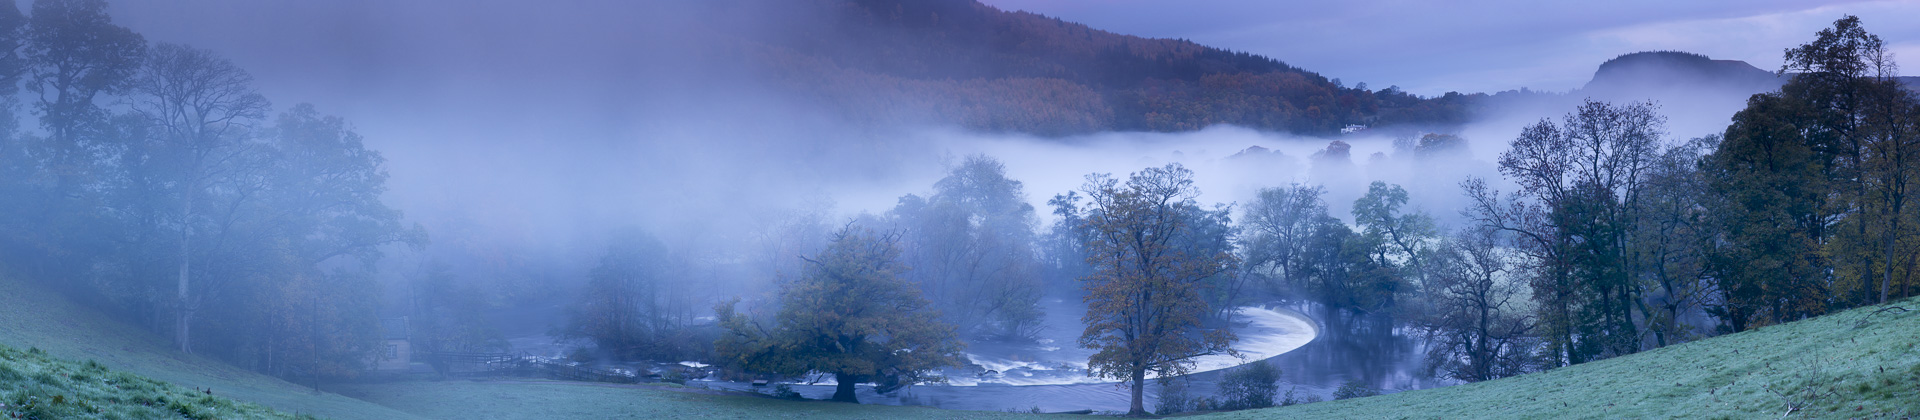 autumn colours and mist in the Dee Valley (Dyffryn Dyfrdwy) at Horseshoe Falls near Llangollen, Denbighshire, Wales